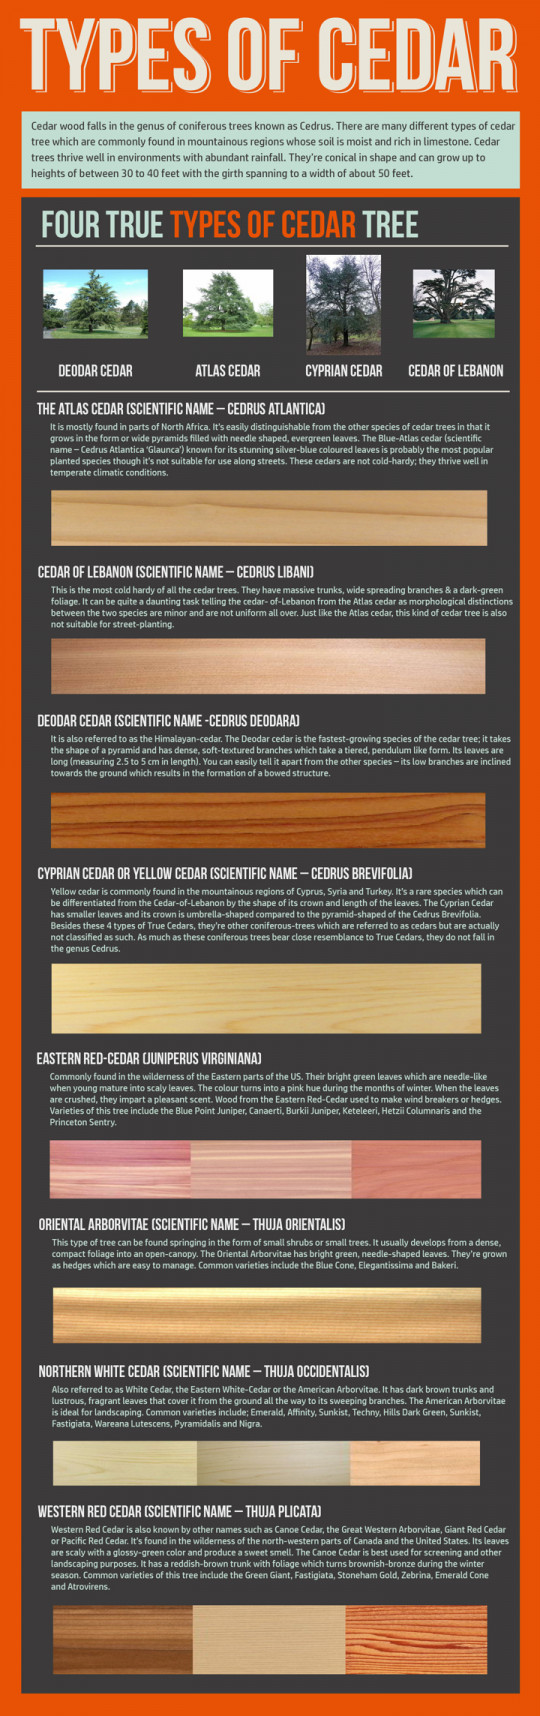 Different Types of Cedar Infographic